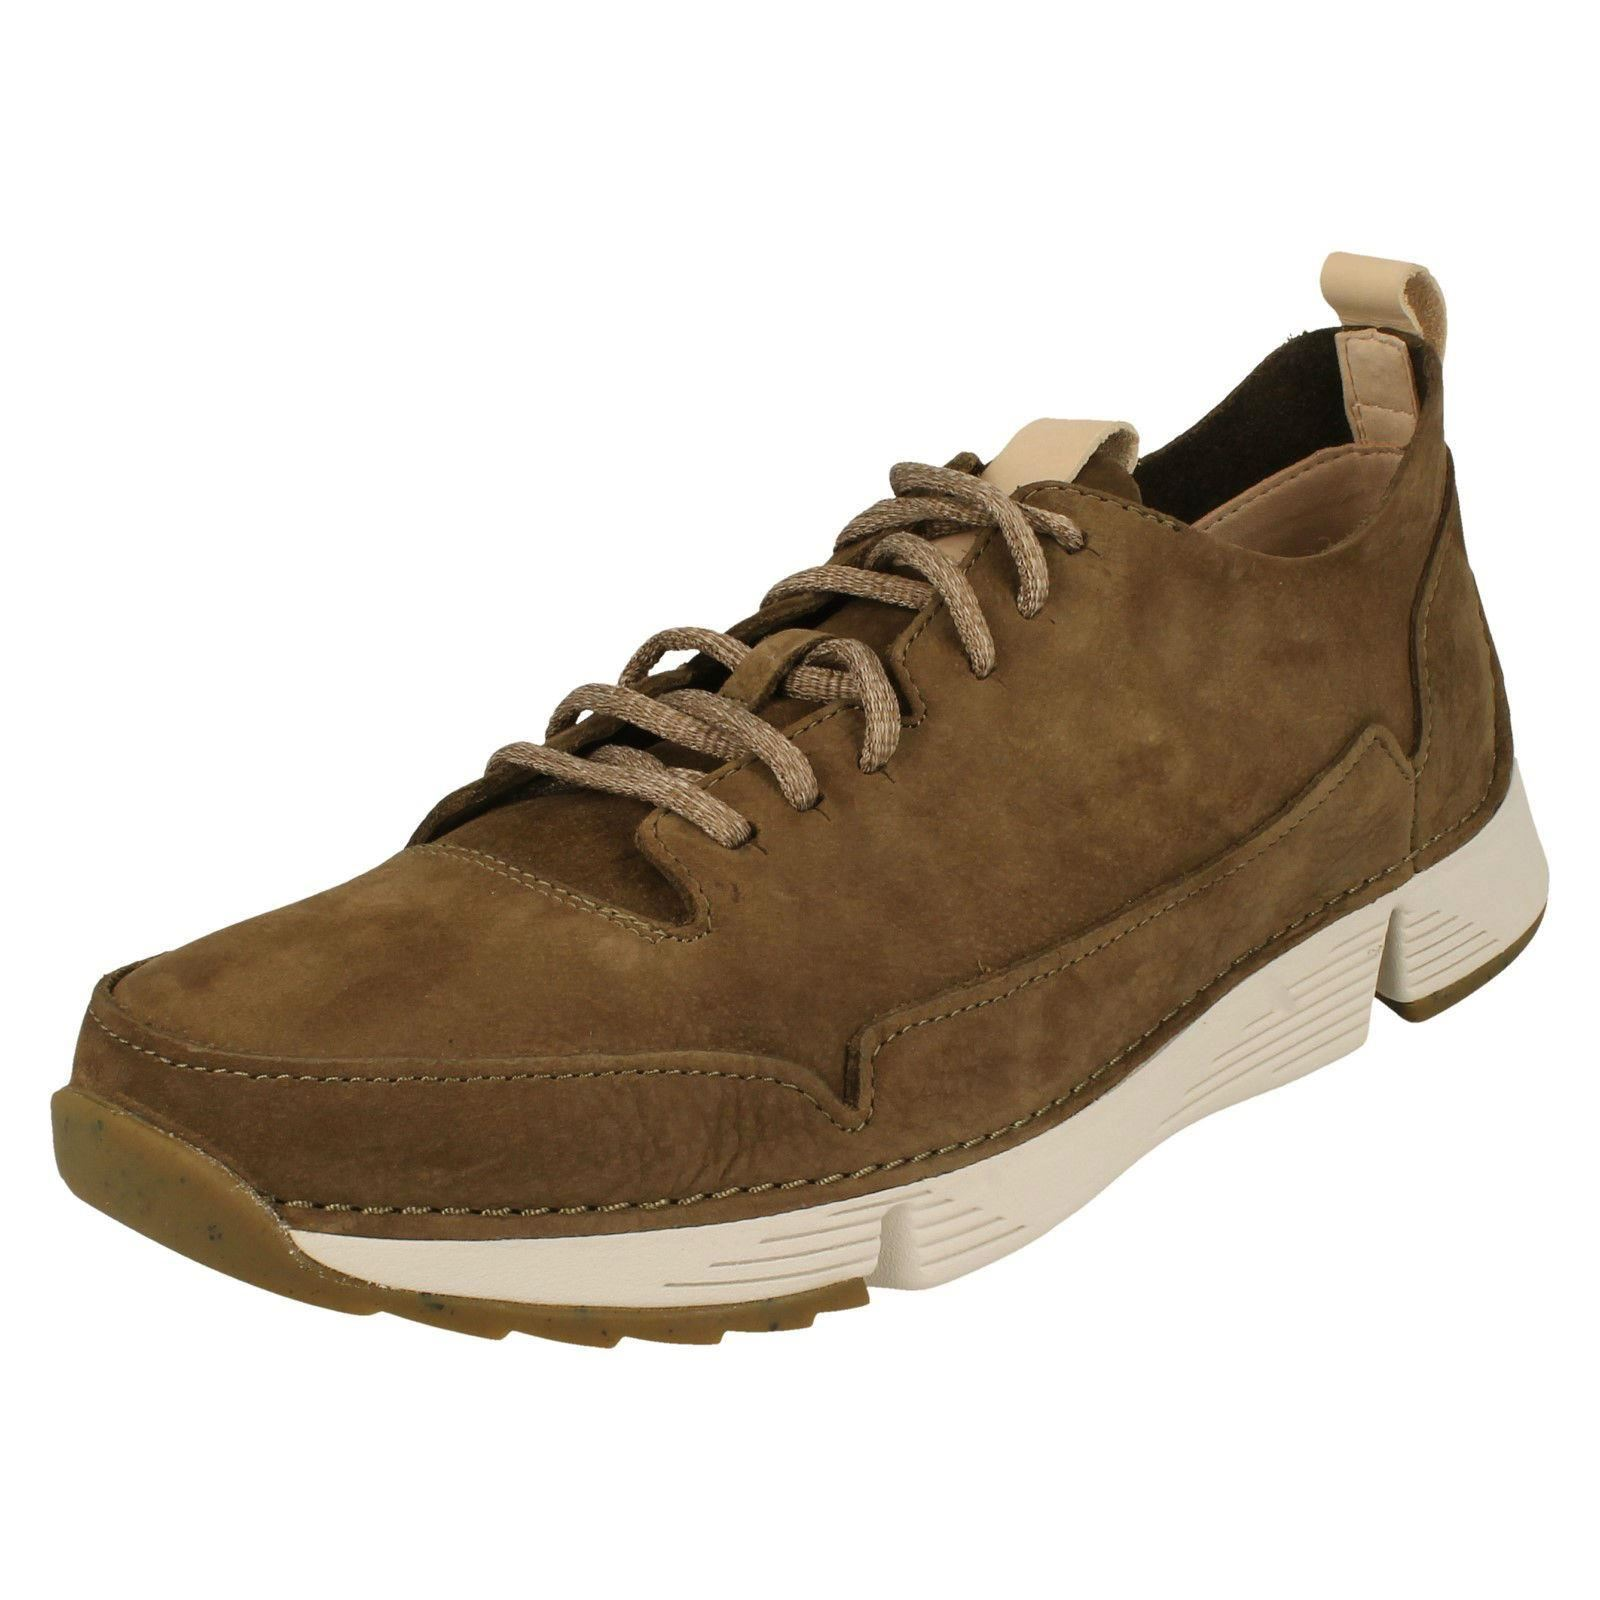 Mens Clarks Casual Lace Up Shoes Tri Spark